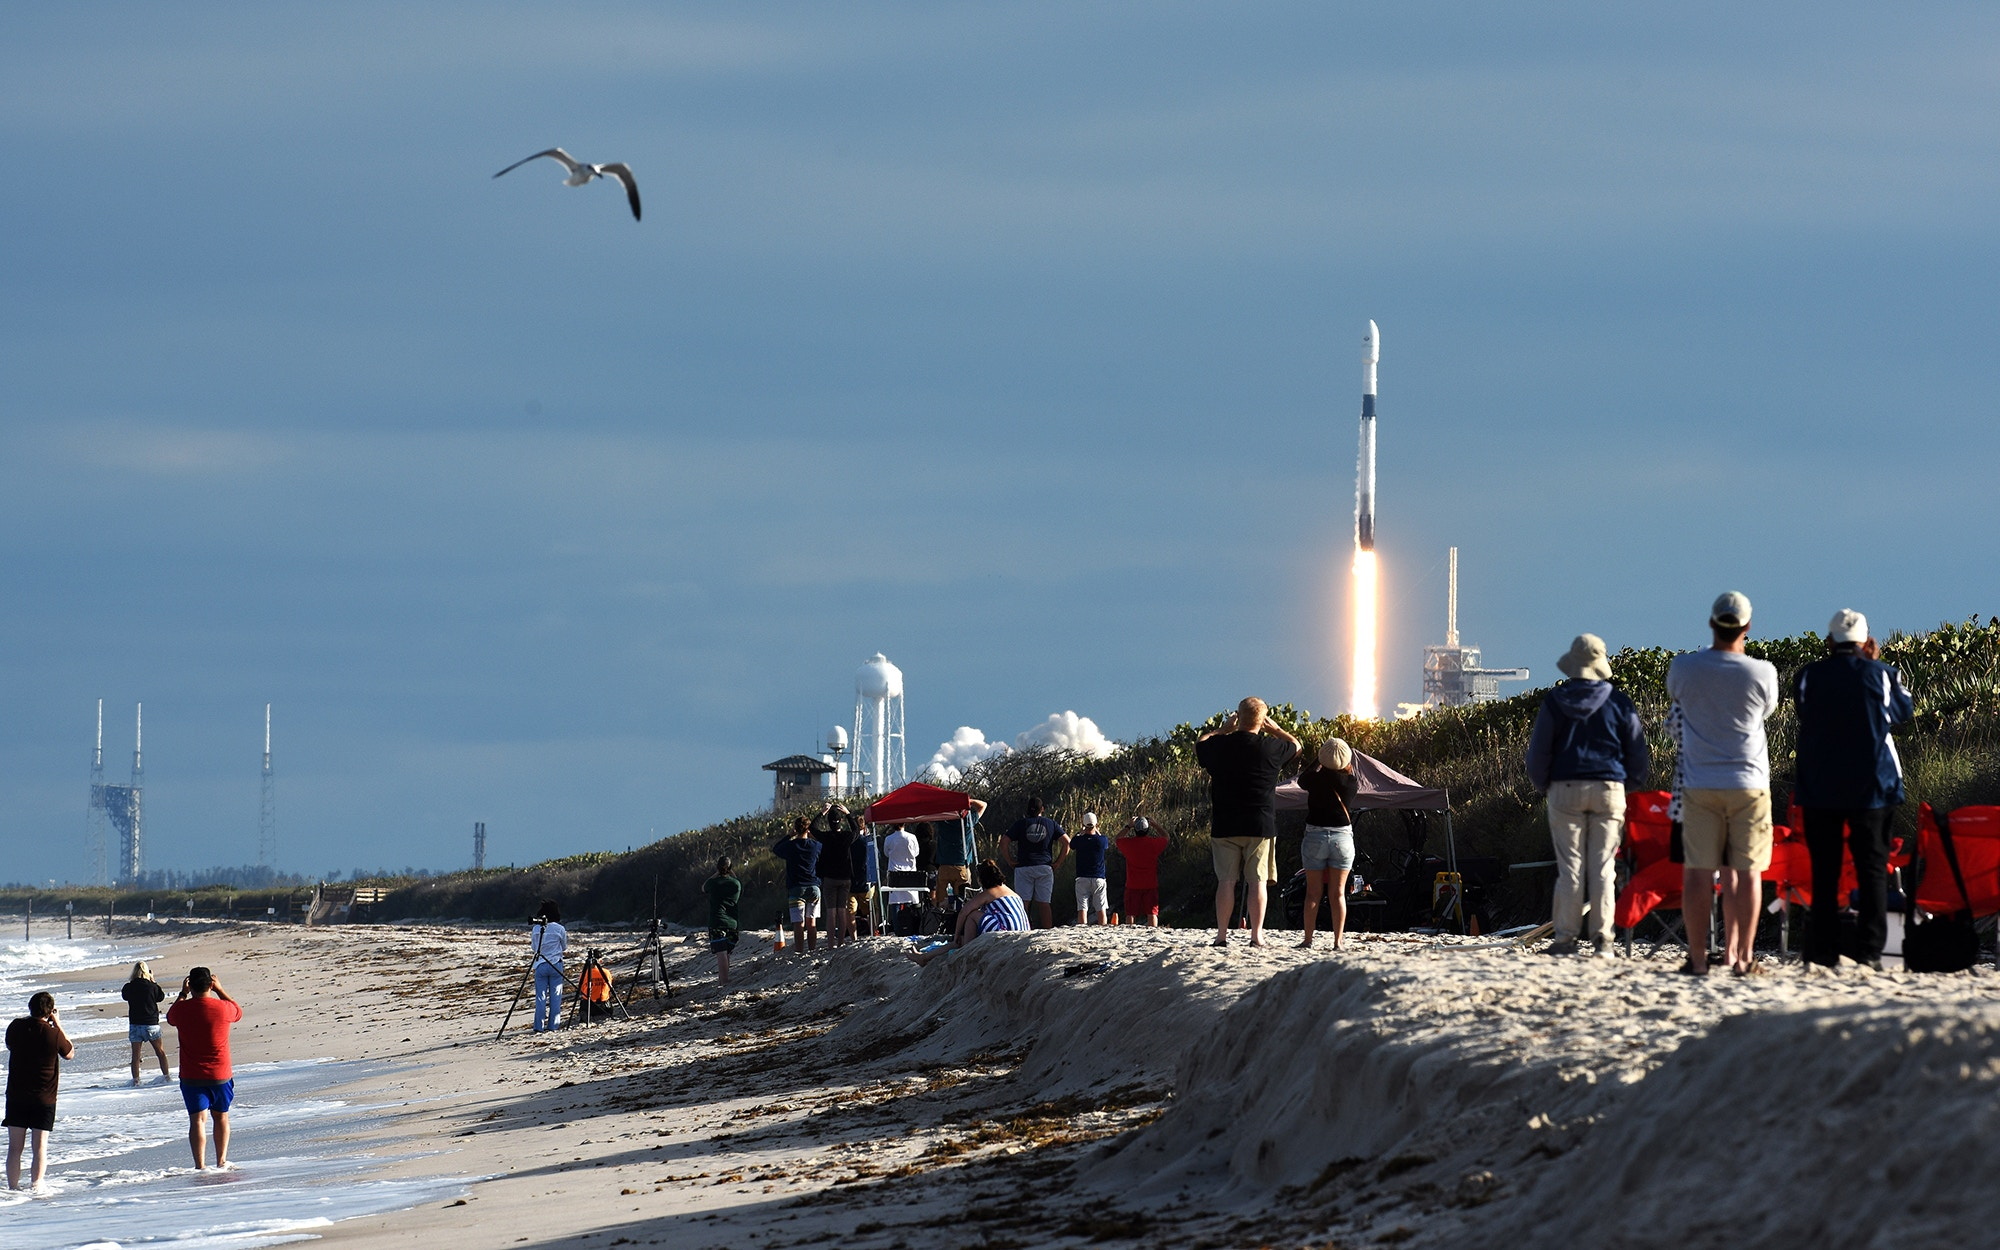 People watch as a SpaceX rocket takes off from Canaveral National Seashore